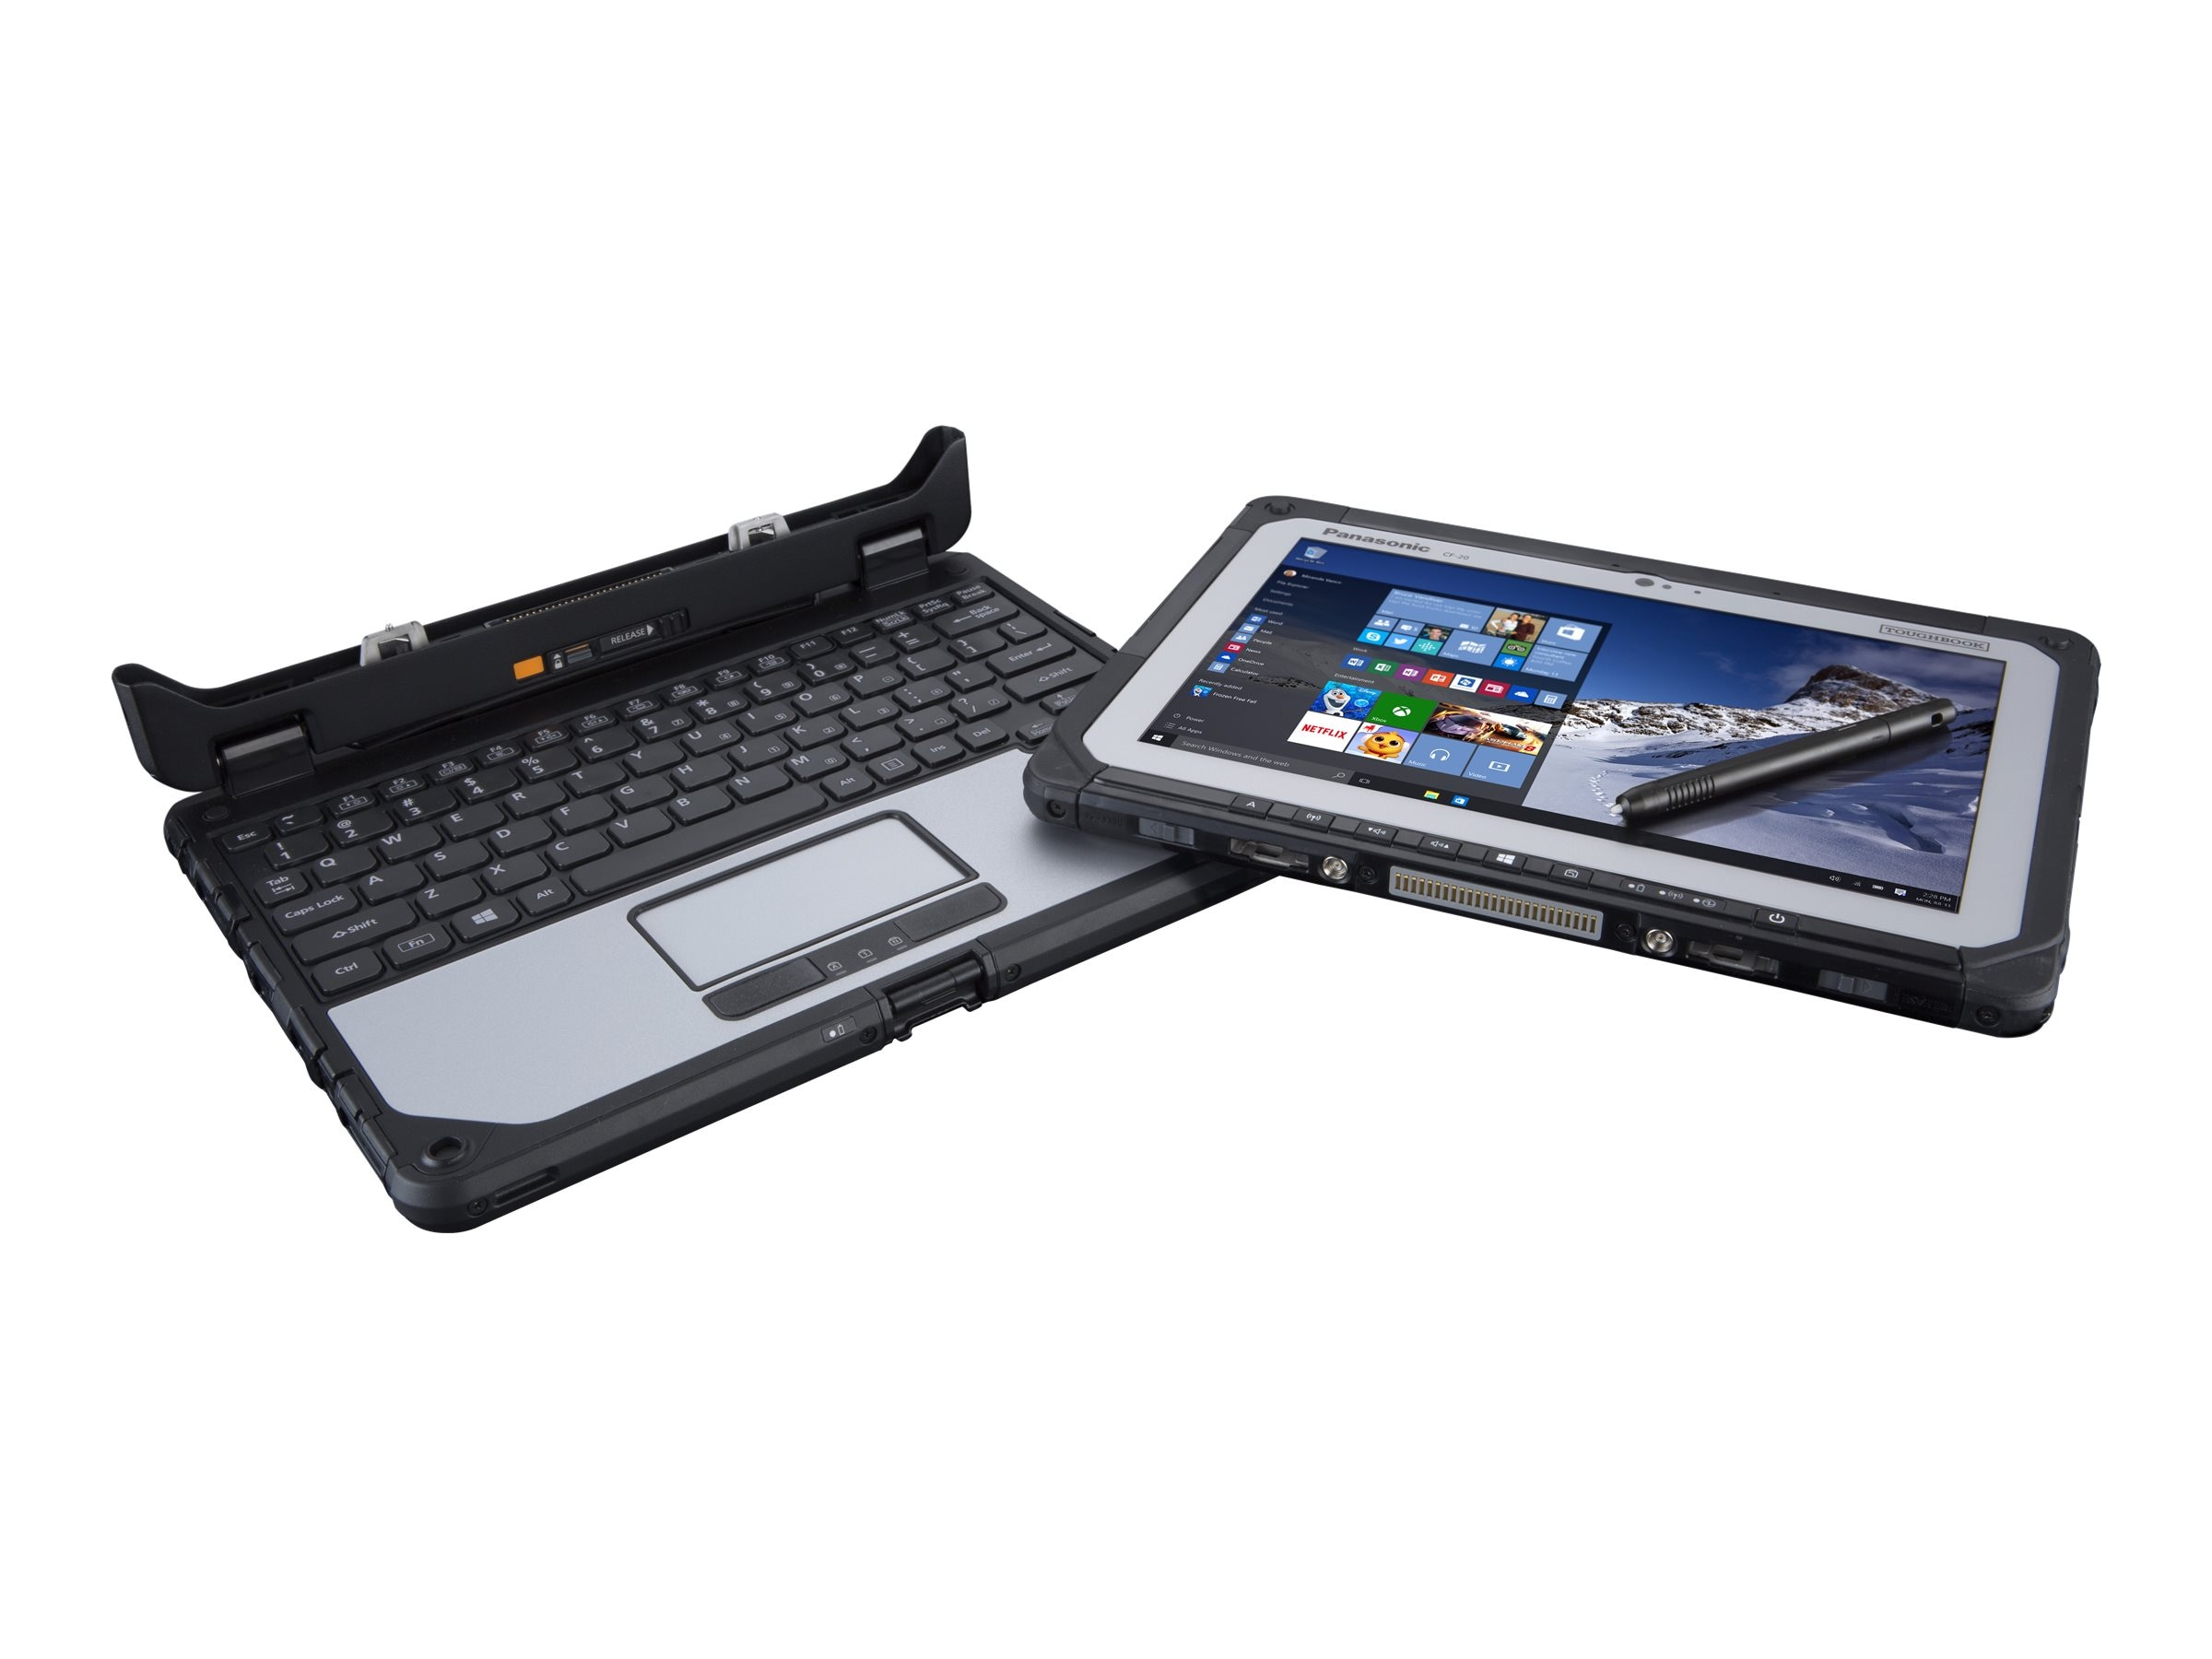 Panasonic Toughbook 20 vPro Core M5-6Y57 1.1GHz 10.1 WUXGA MT W7 (W10P COA), CF-20C0205KM